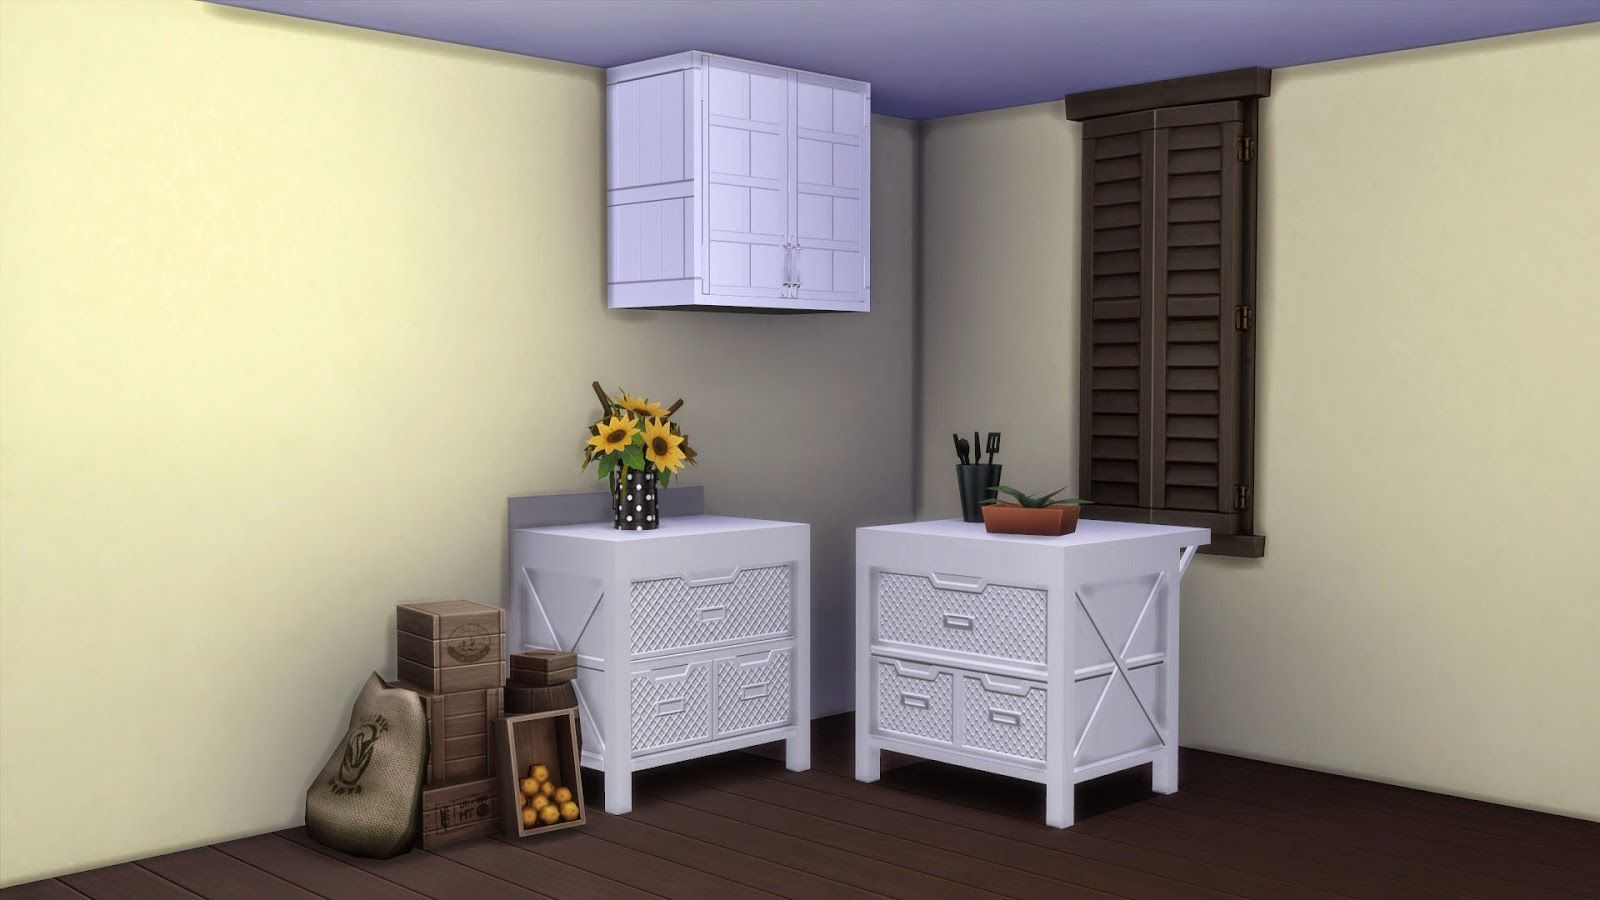 Kym's Creations: Kitchen Counters & Cabinets Recolor - Sims 4